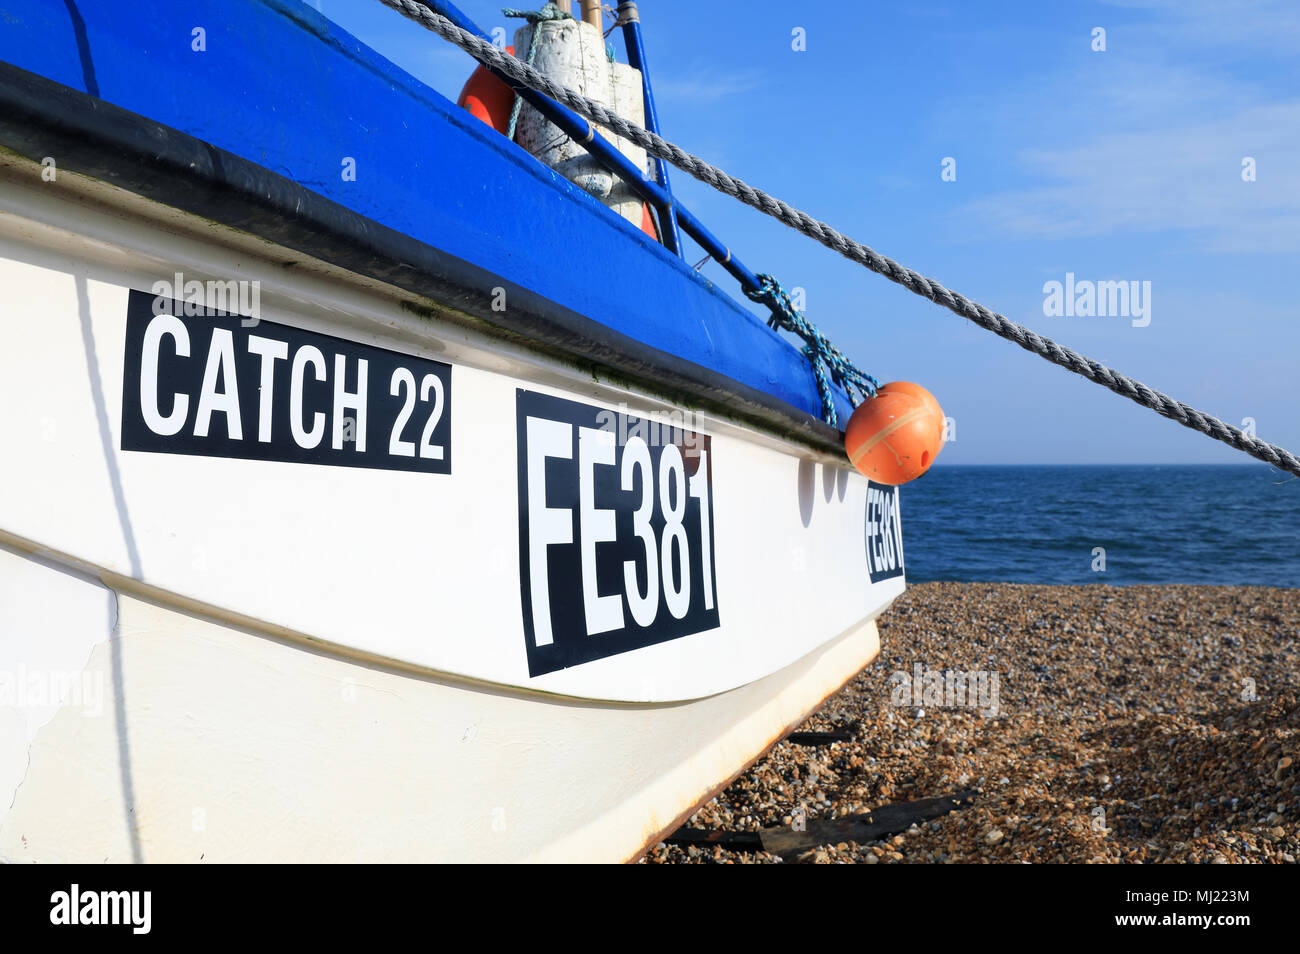 Fishing boat on the pebble beach in Hythe, near Folkestone, Kent, UK - Stock Image